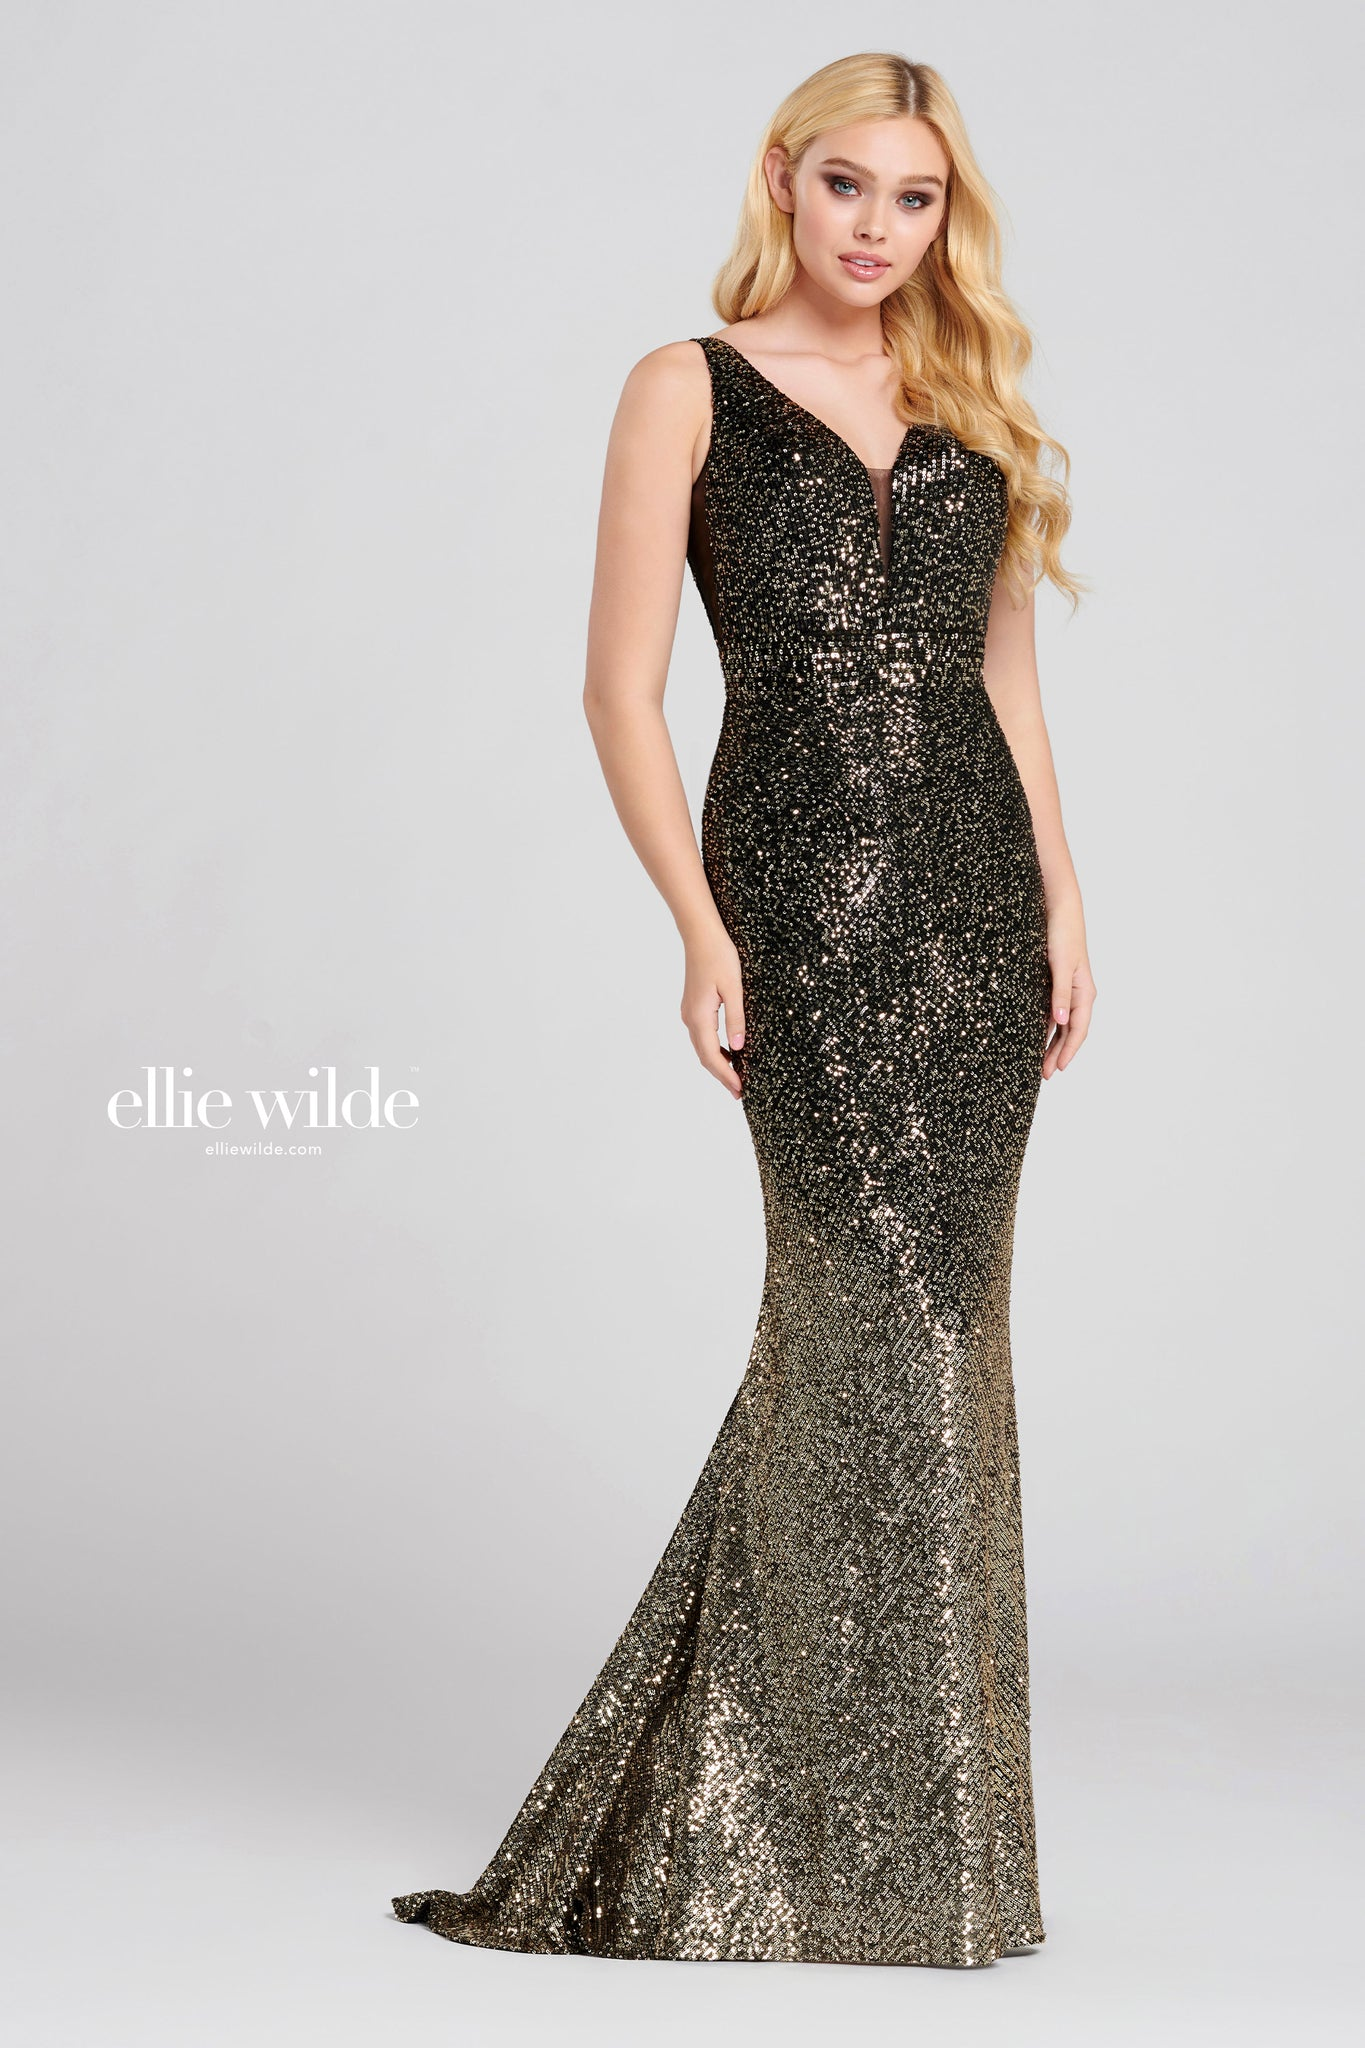 Ellie Wilde Black & Gold Sequin Gown